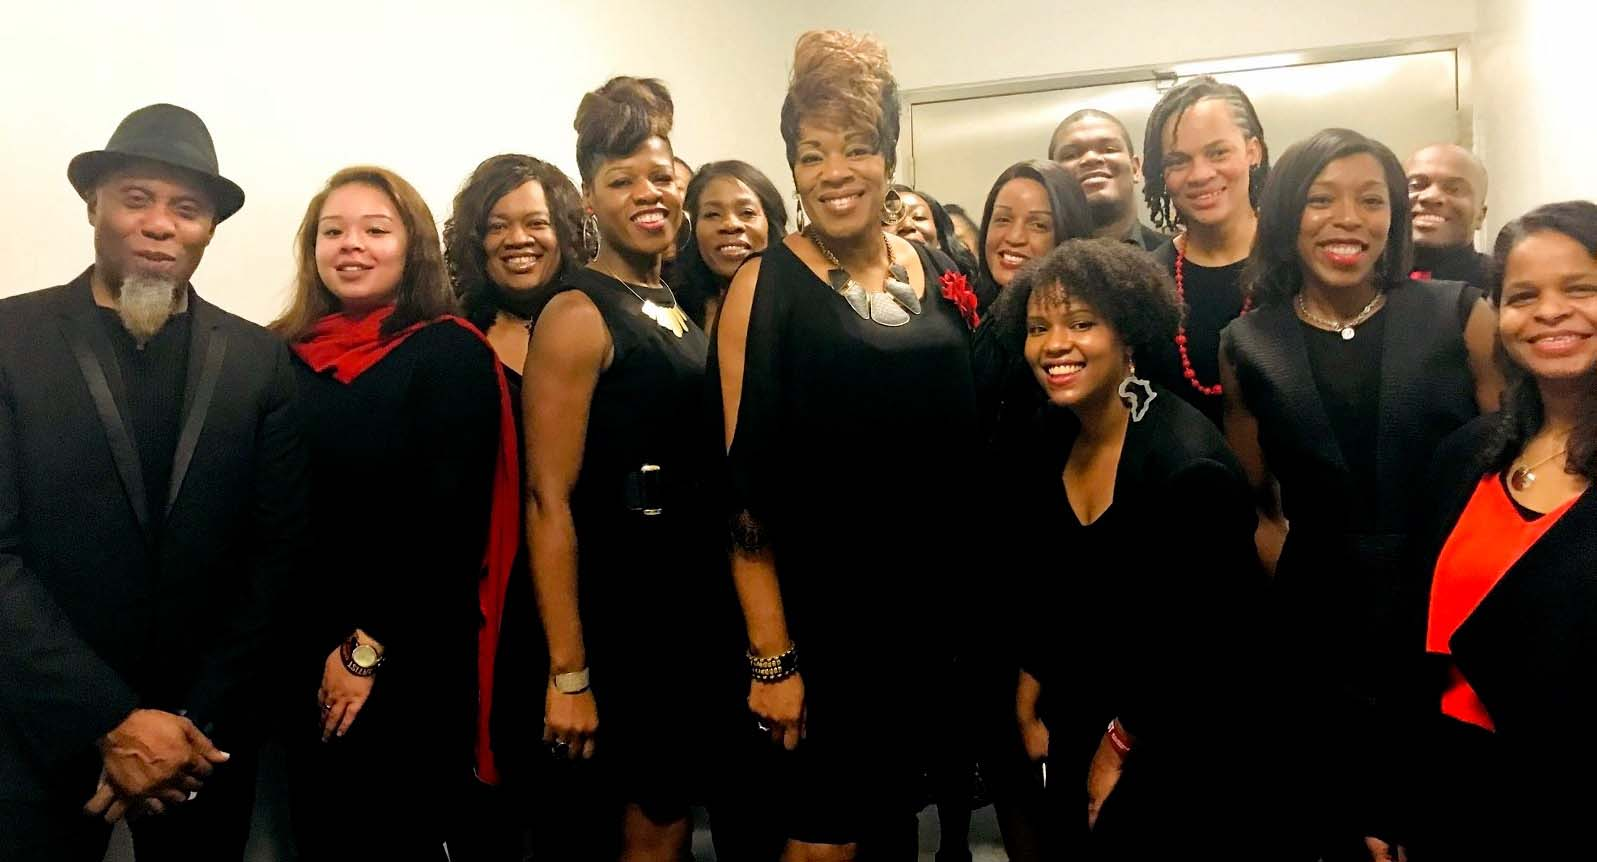 The B Positive choir